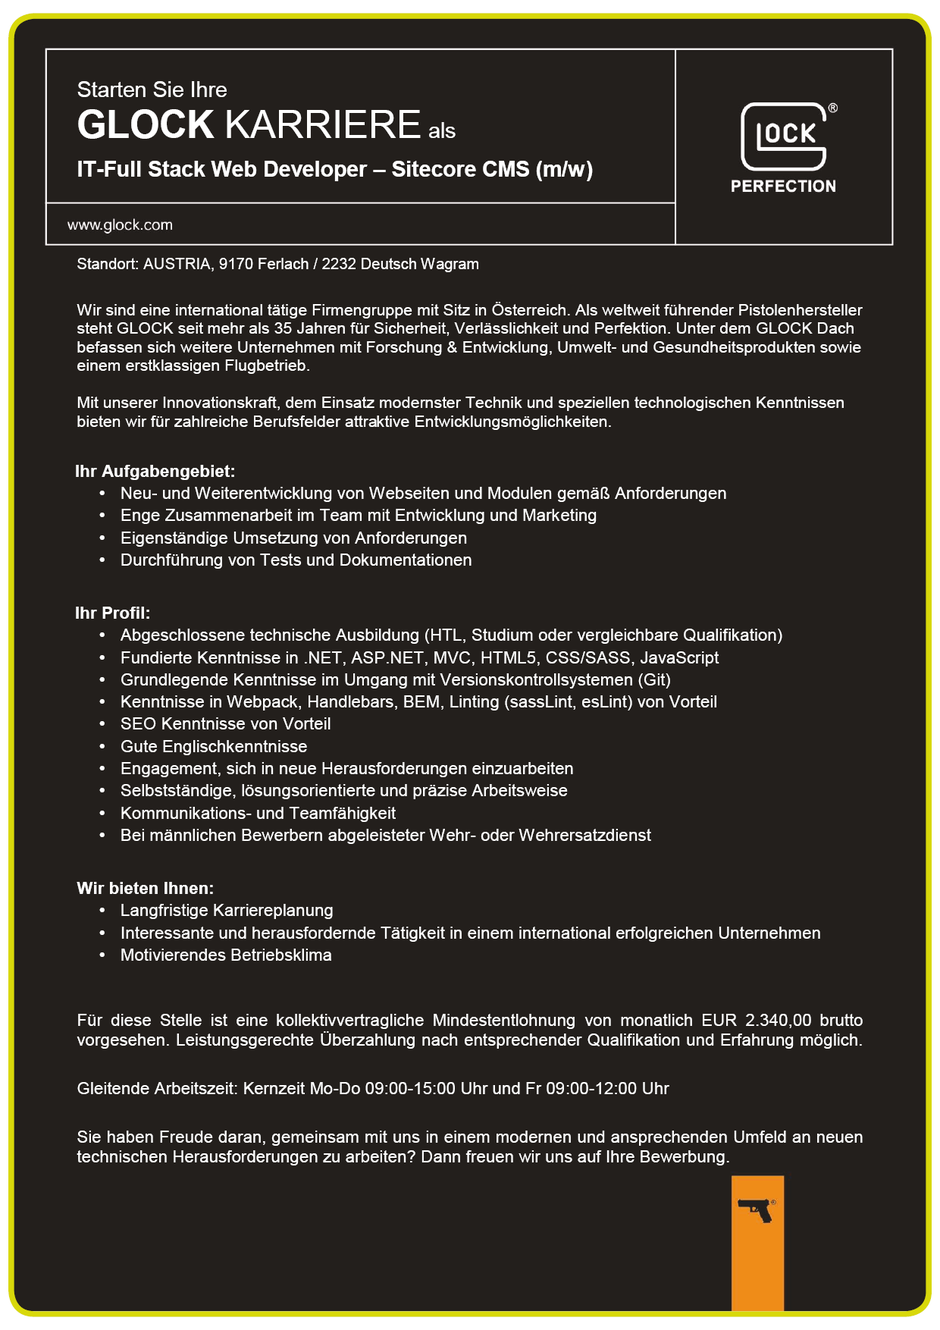 Software Developer Jobs - IT Full Stack Web Developer - Glock GesmbH - Deutsch Wagram - Ferlach